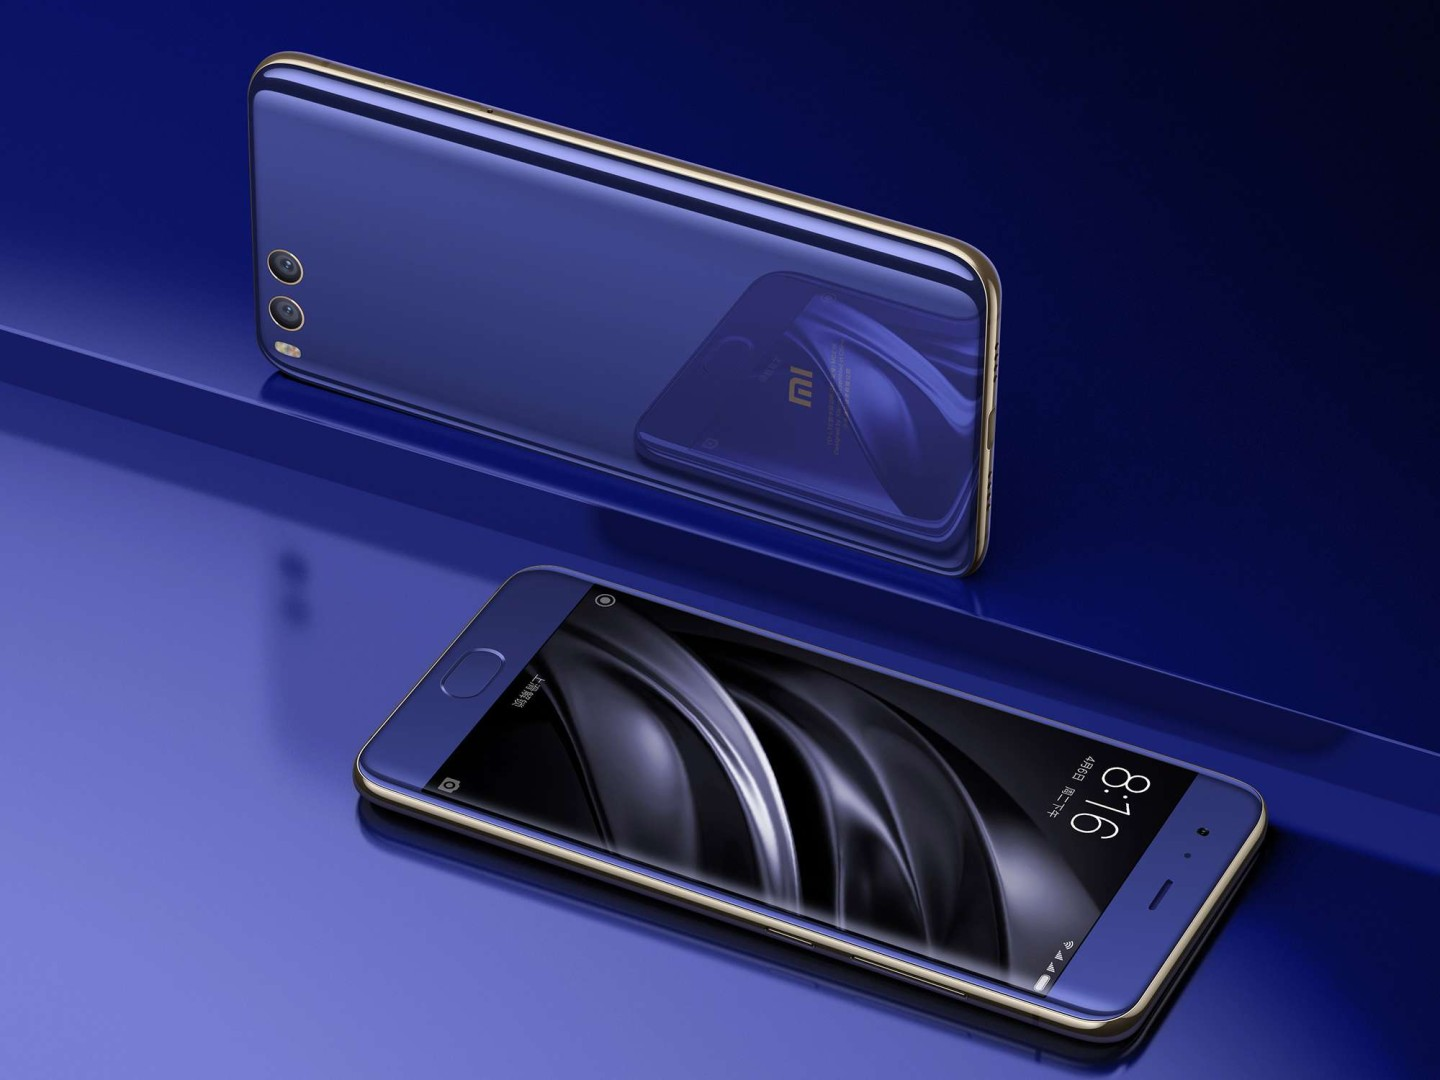 Xiaomi bets on Mi 6 smartphone to regain its mojo in China | South